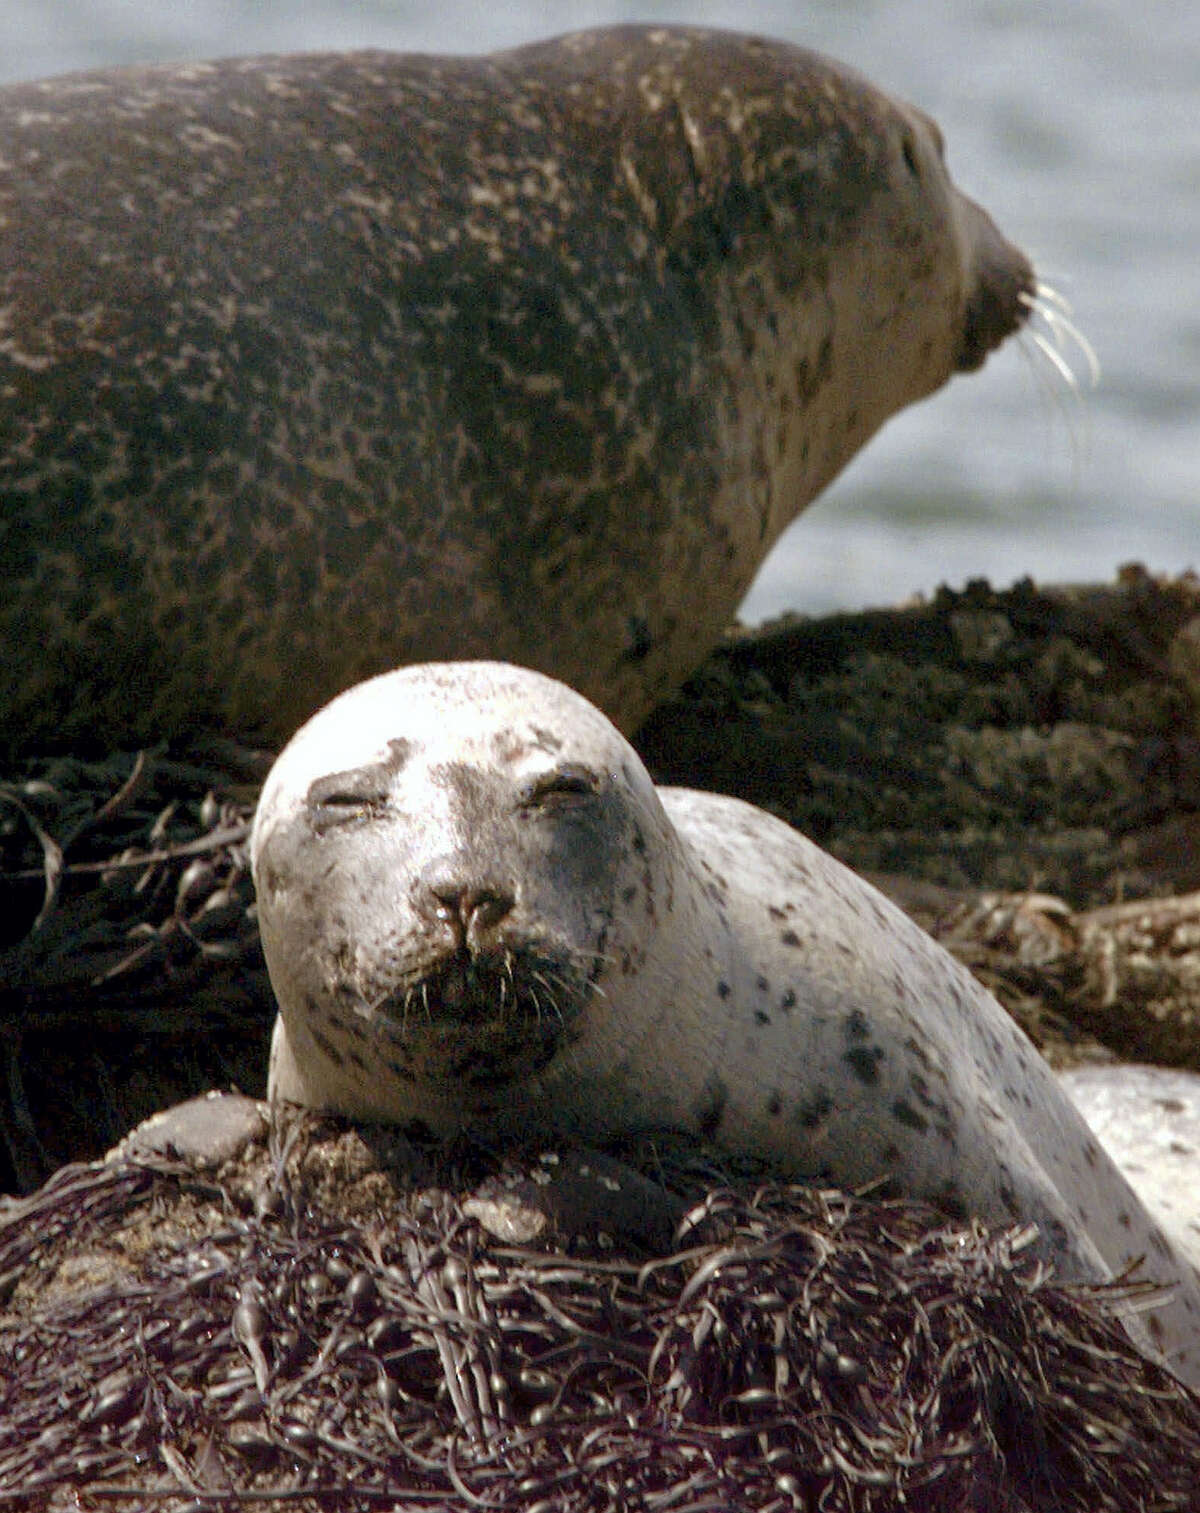 In this file photo, a young harbor seal lounges on top of seaweed that covers partially submerged Cedar Ledge near Cundy's Harbor, Maine. In a statement released Thursday the Greater Atlantic Region of the National Oceanic and Atmospheric Administration Fisheries reminded New England beach-goers to resist any temptation to take a selfie with a cute little seal pup because it can put both people and the animals at risk.